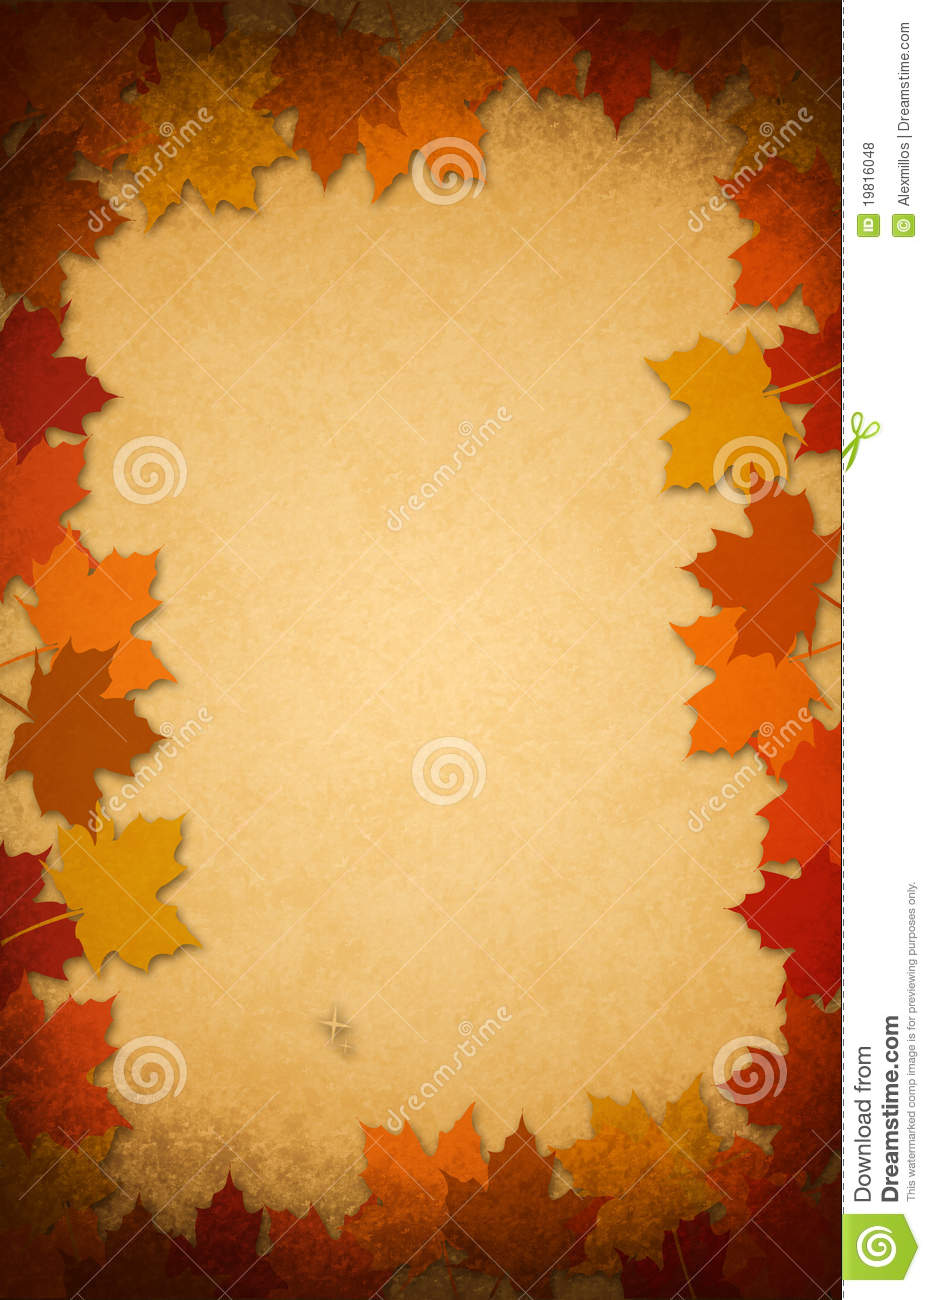 Fall Wallpaper Border Thanksgiving Leaves On An Old Paper Background Royalty